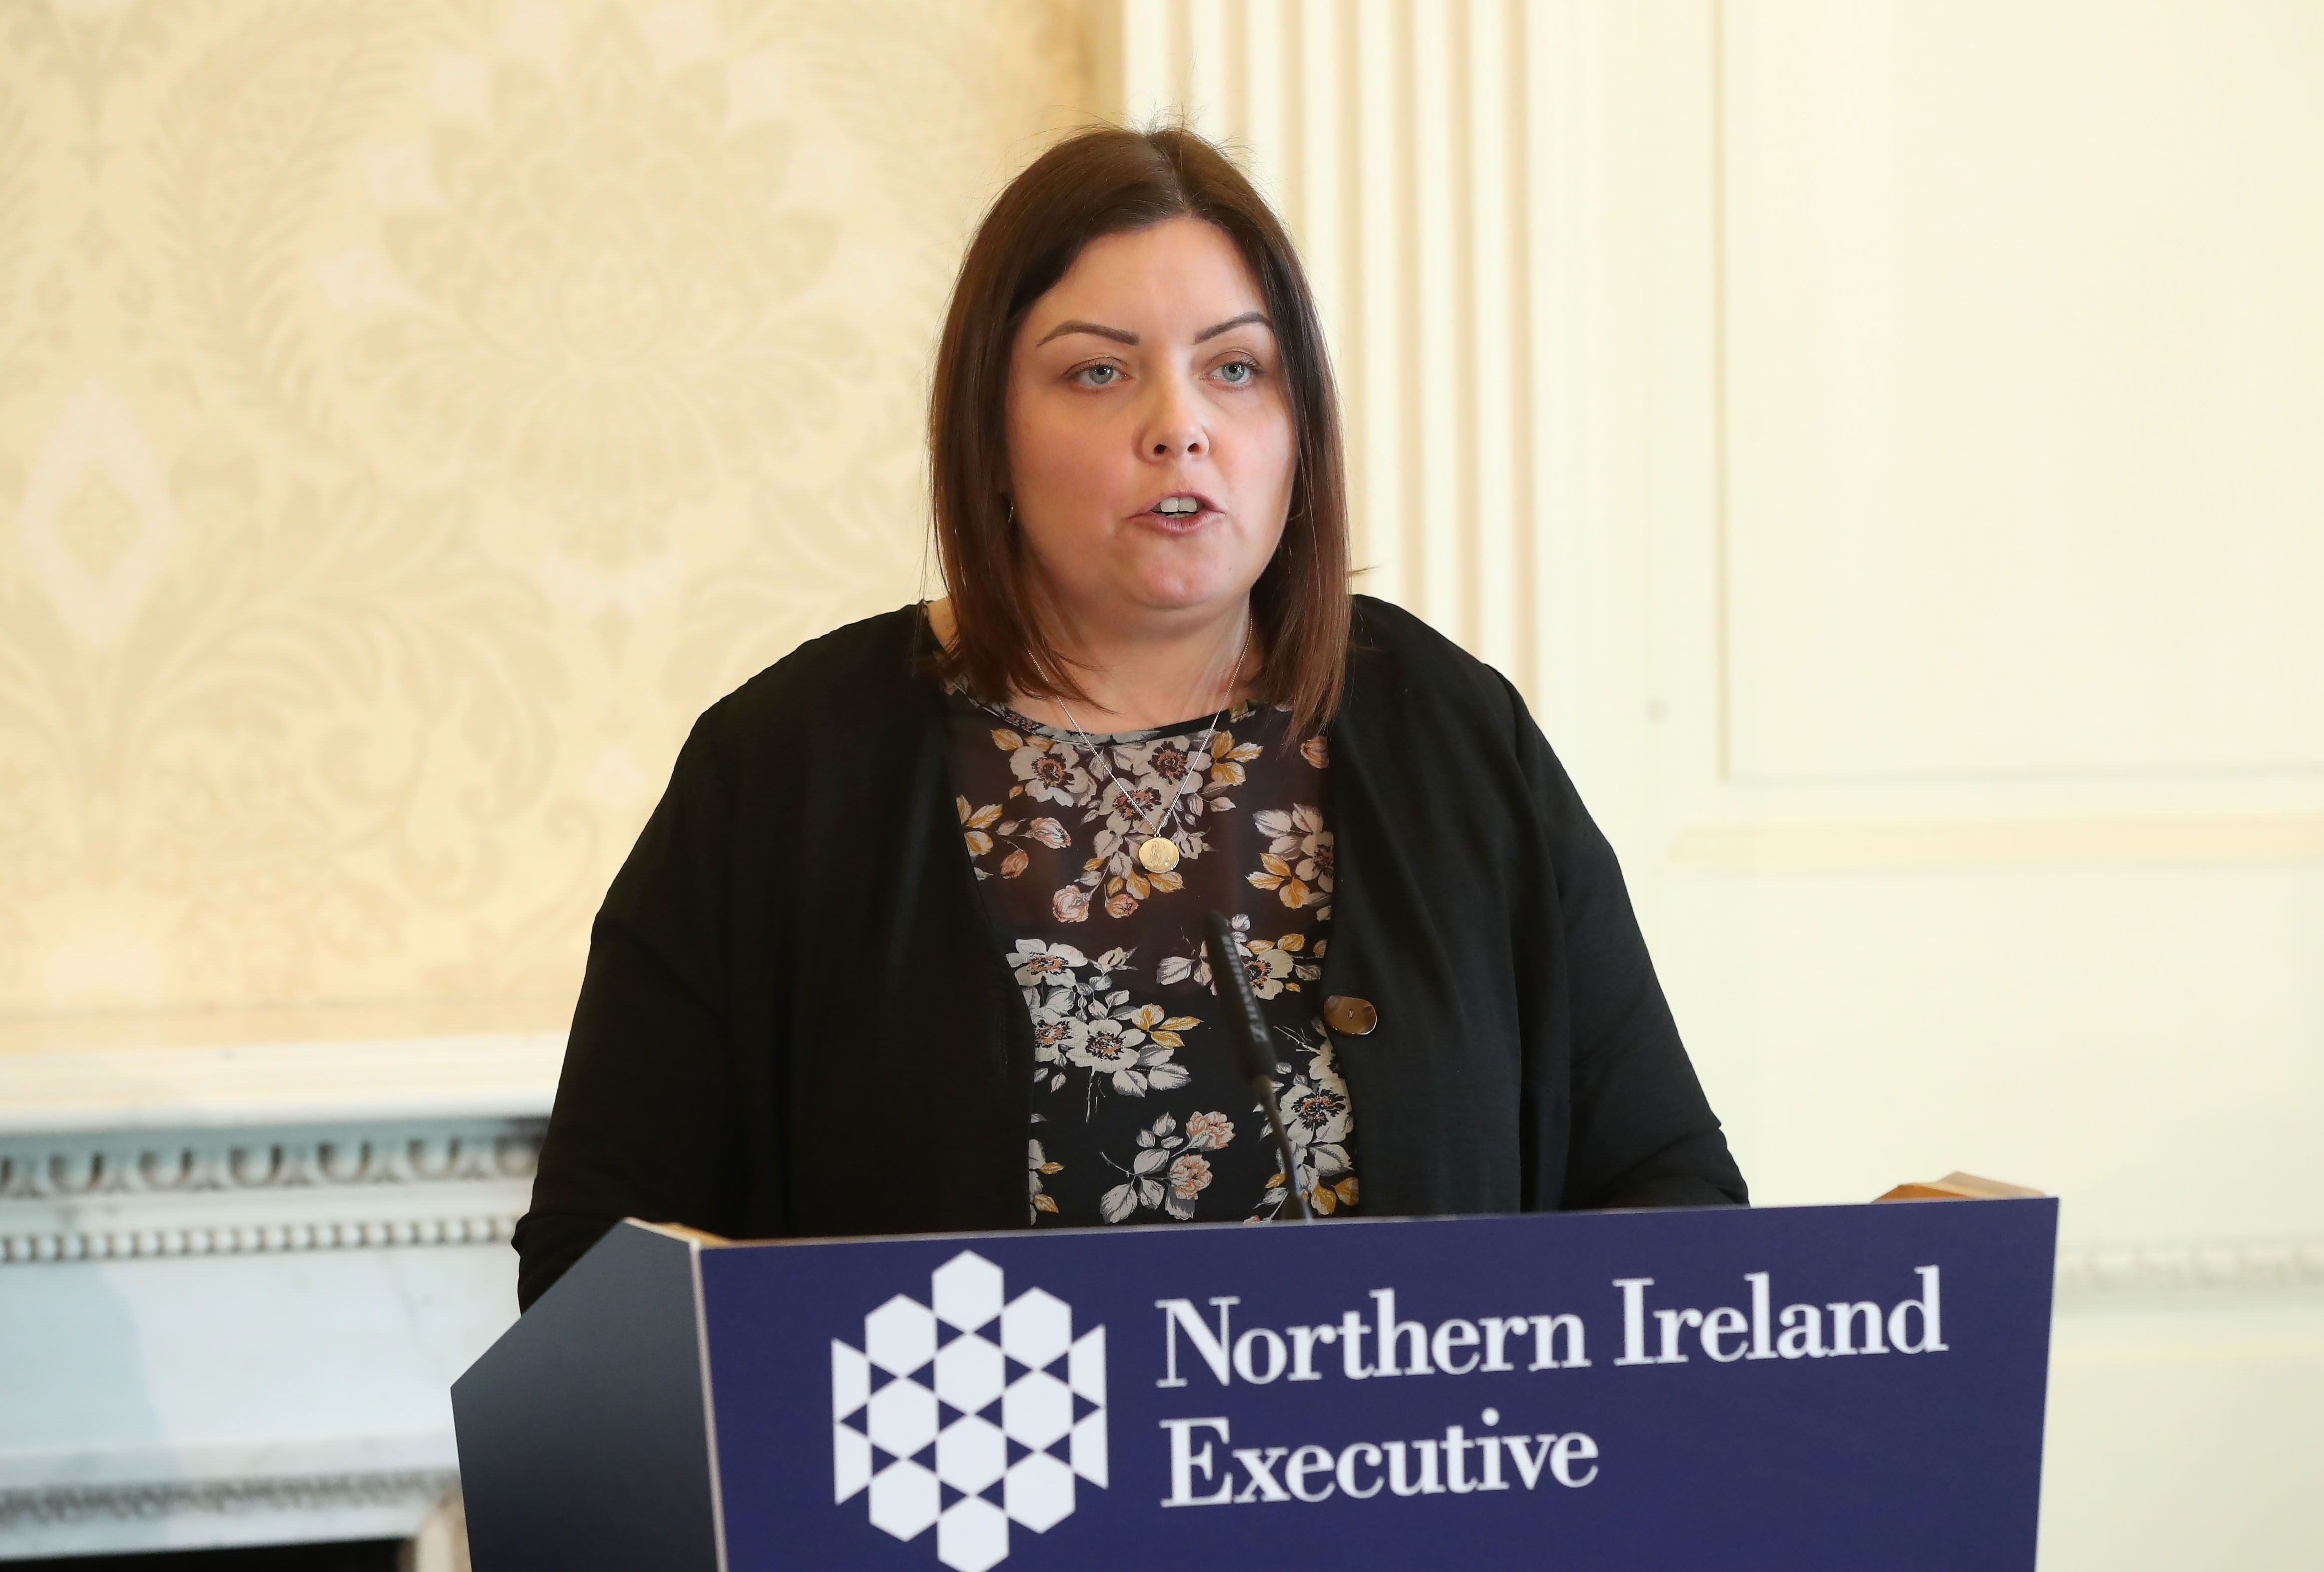 Communities Minister, Deirdre Hargey, has welcomed the announcement